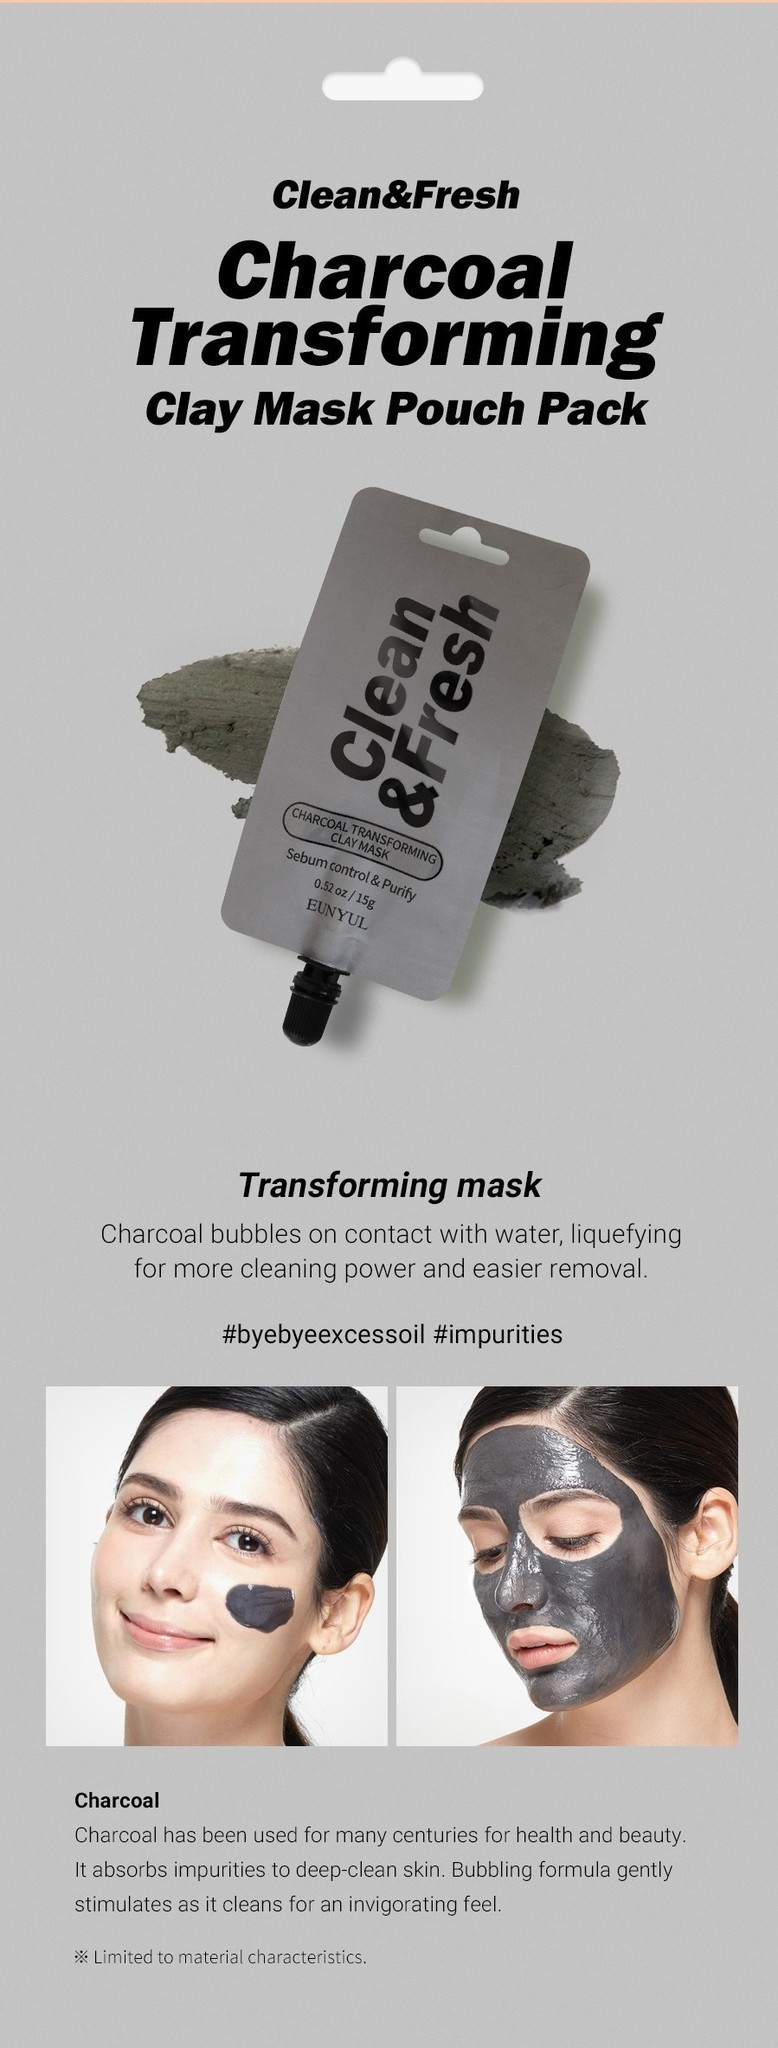 Clean & Fresh Clay Mask Pouch Pack - Charcoal Transforming-4